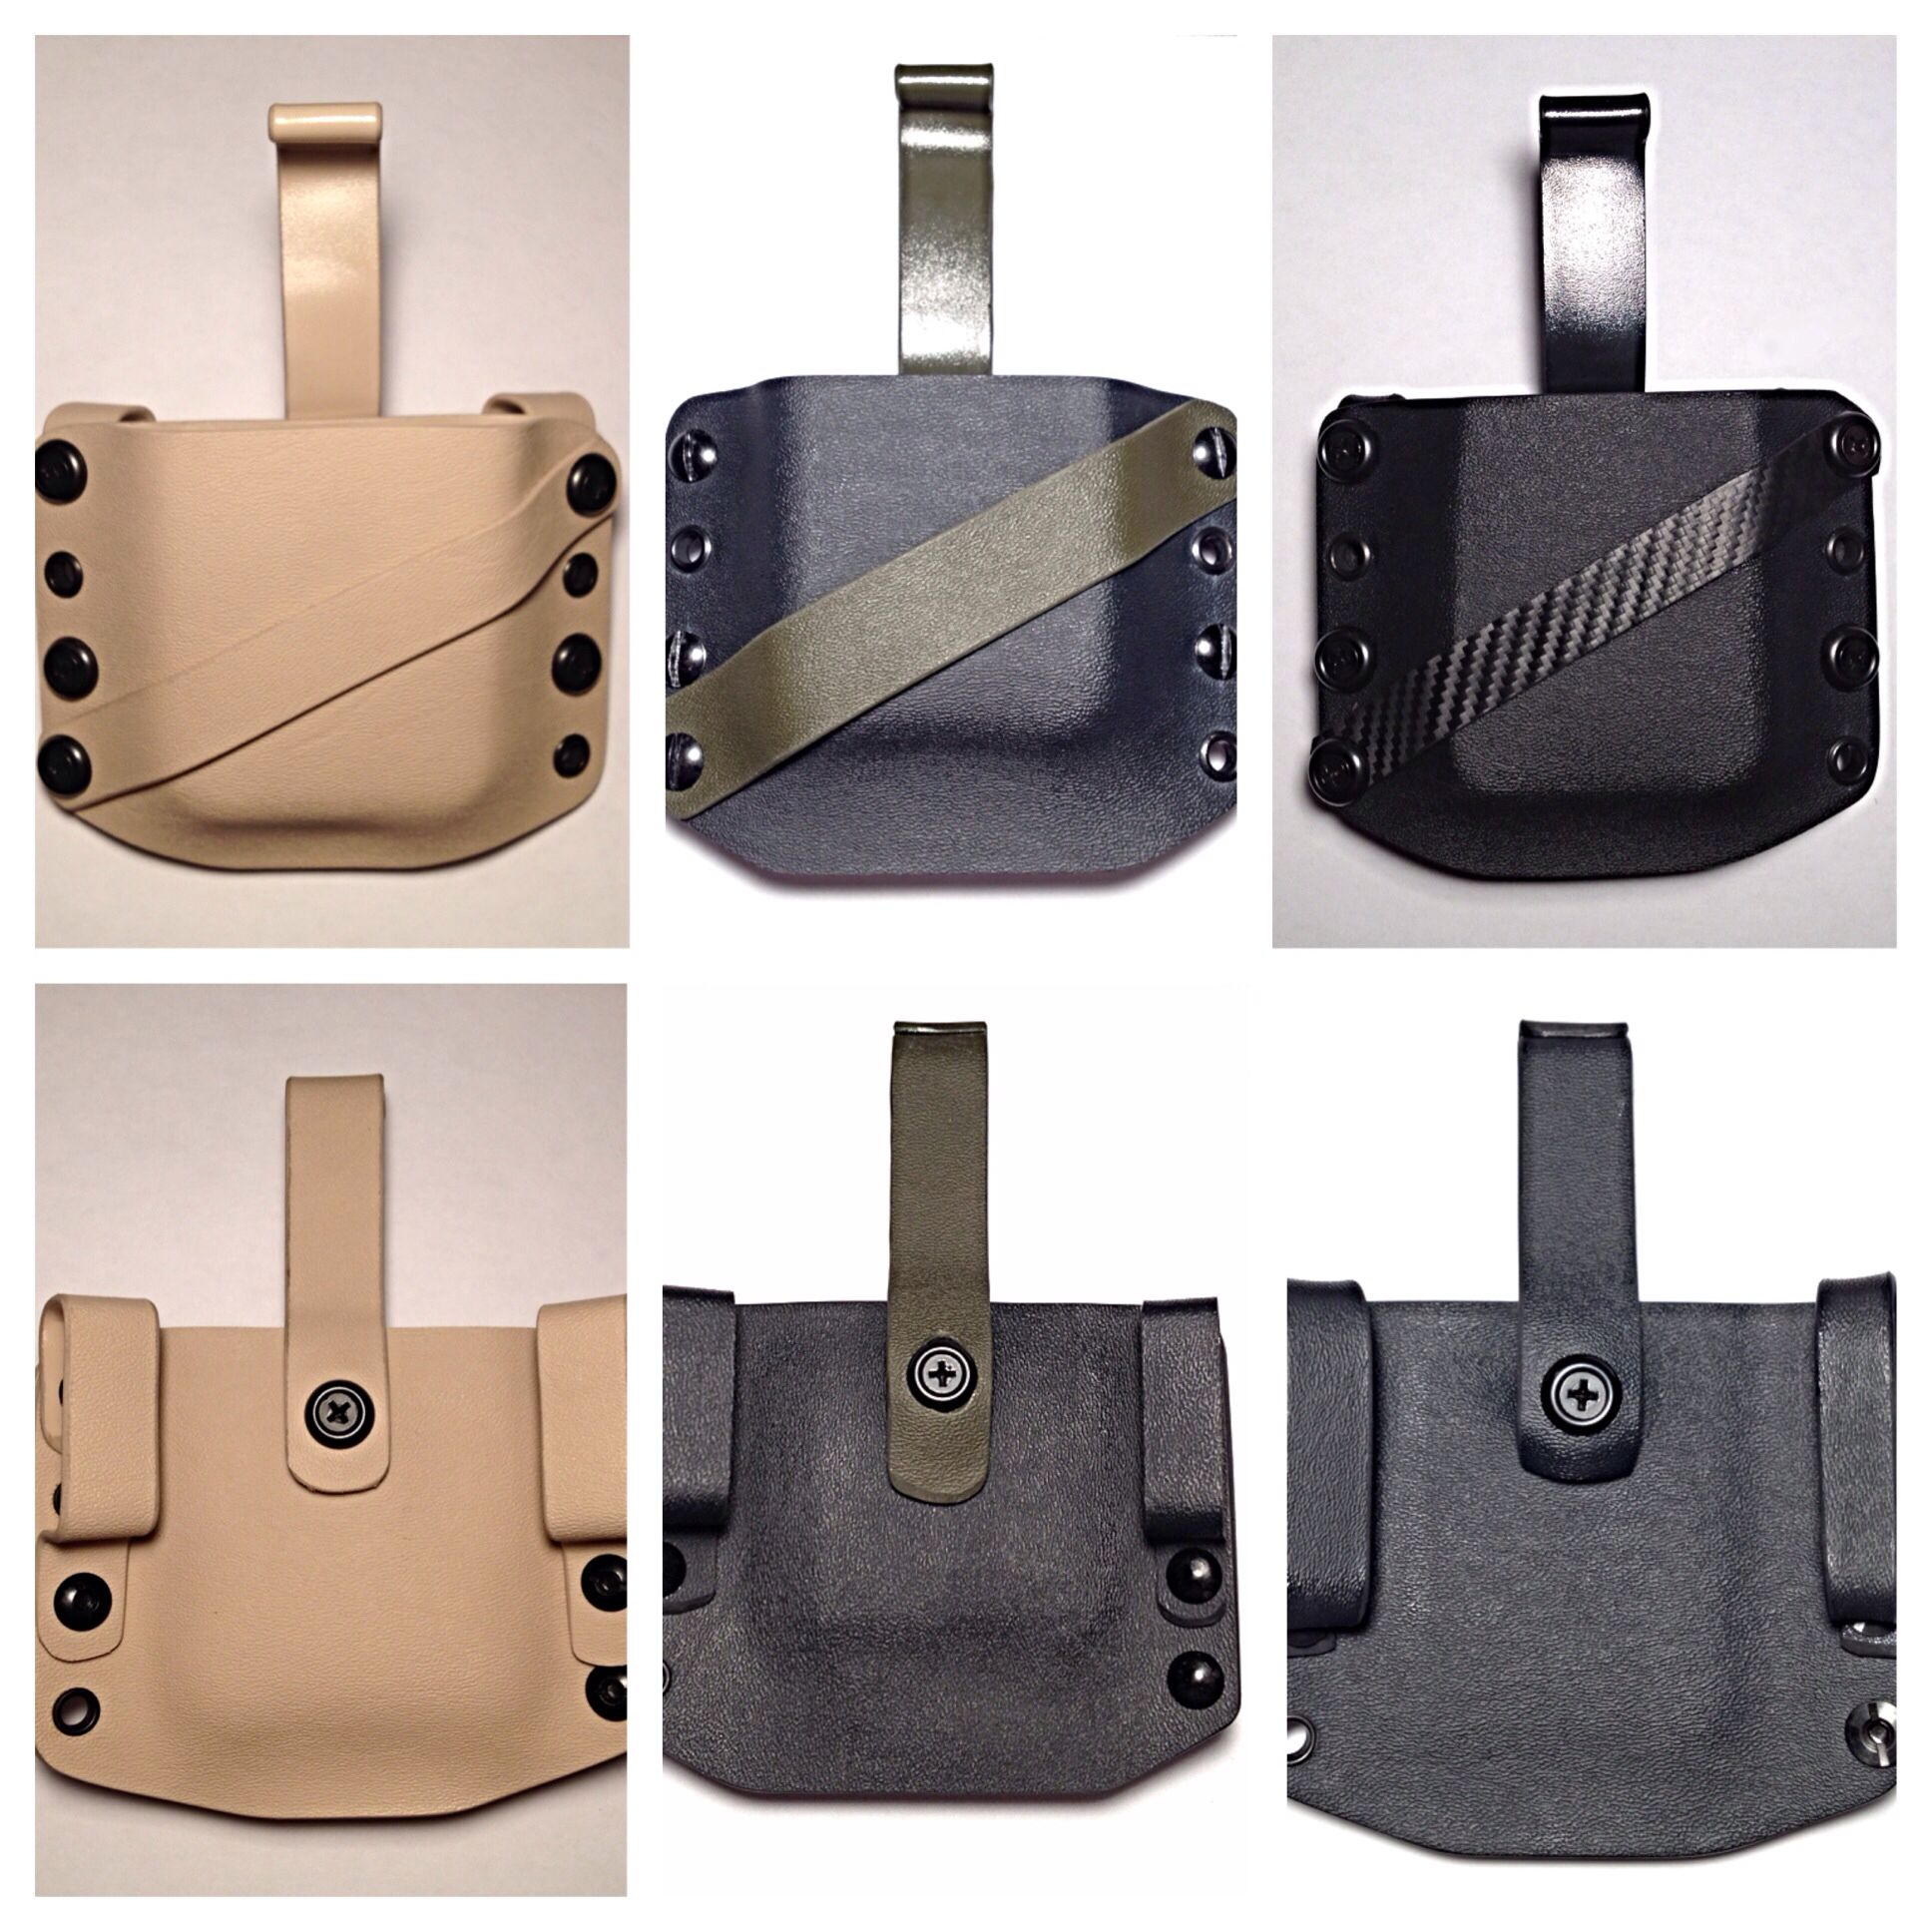 online retailer 38fa3 0b3fb The Gen 7 kydex iPhone holster and iPhone case by Ironclad Tactical ...